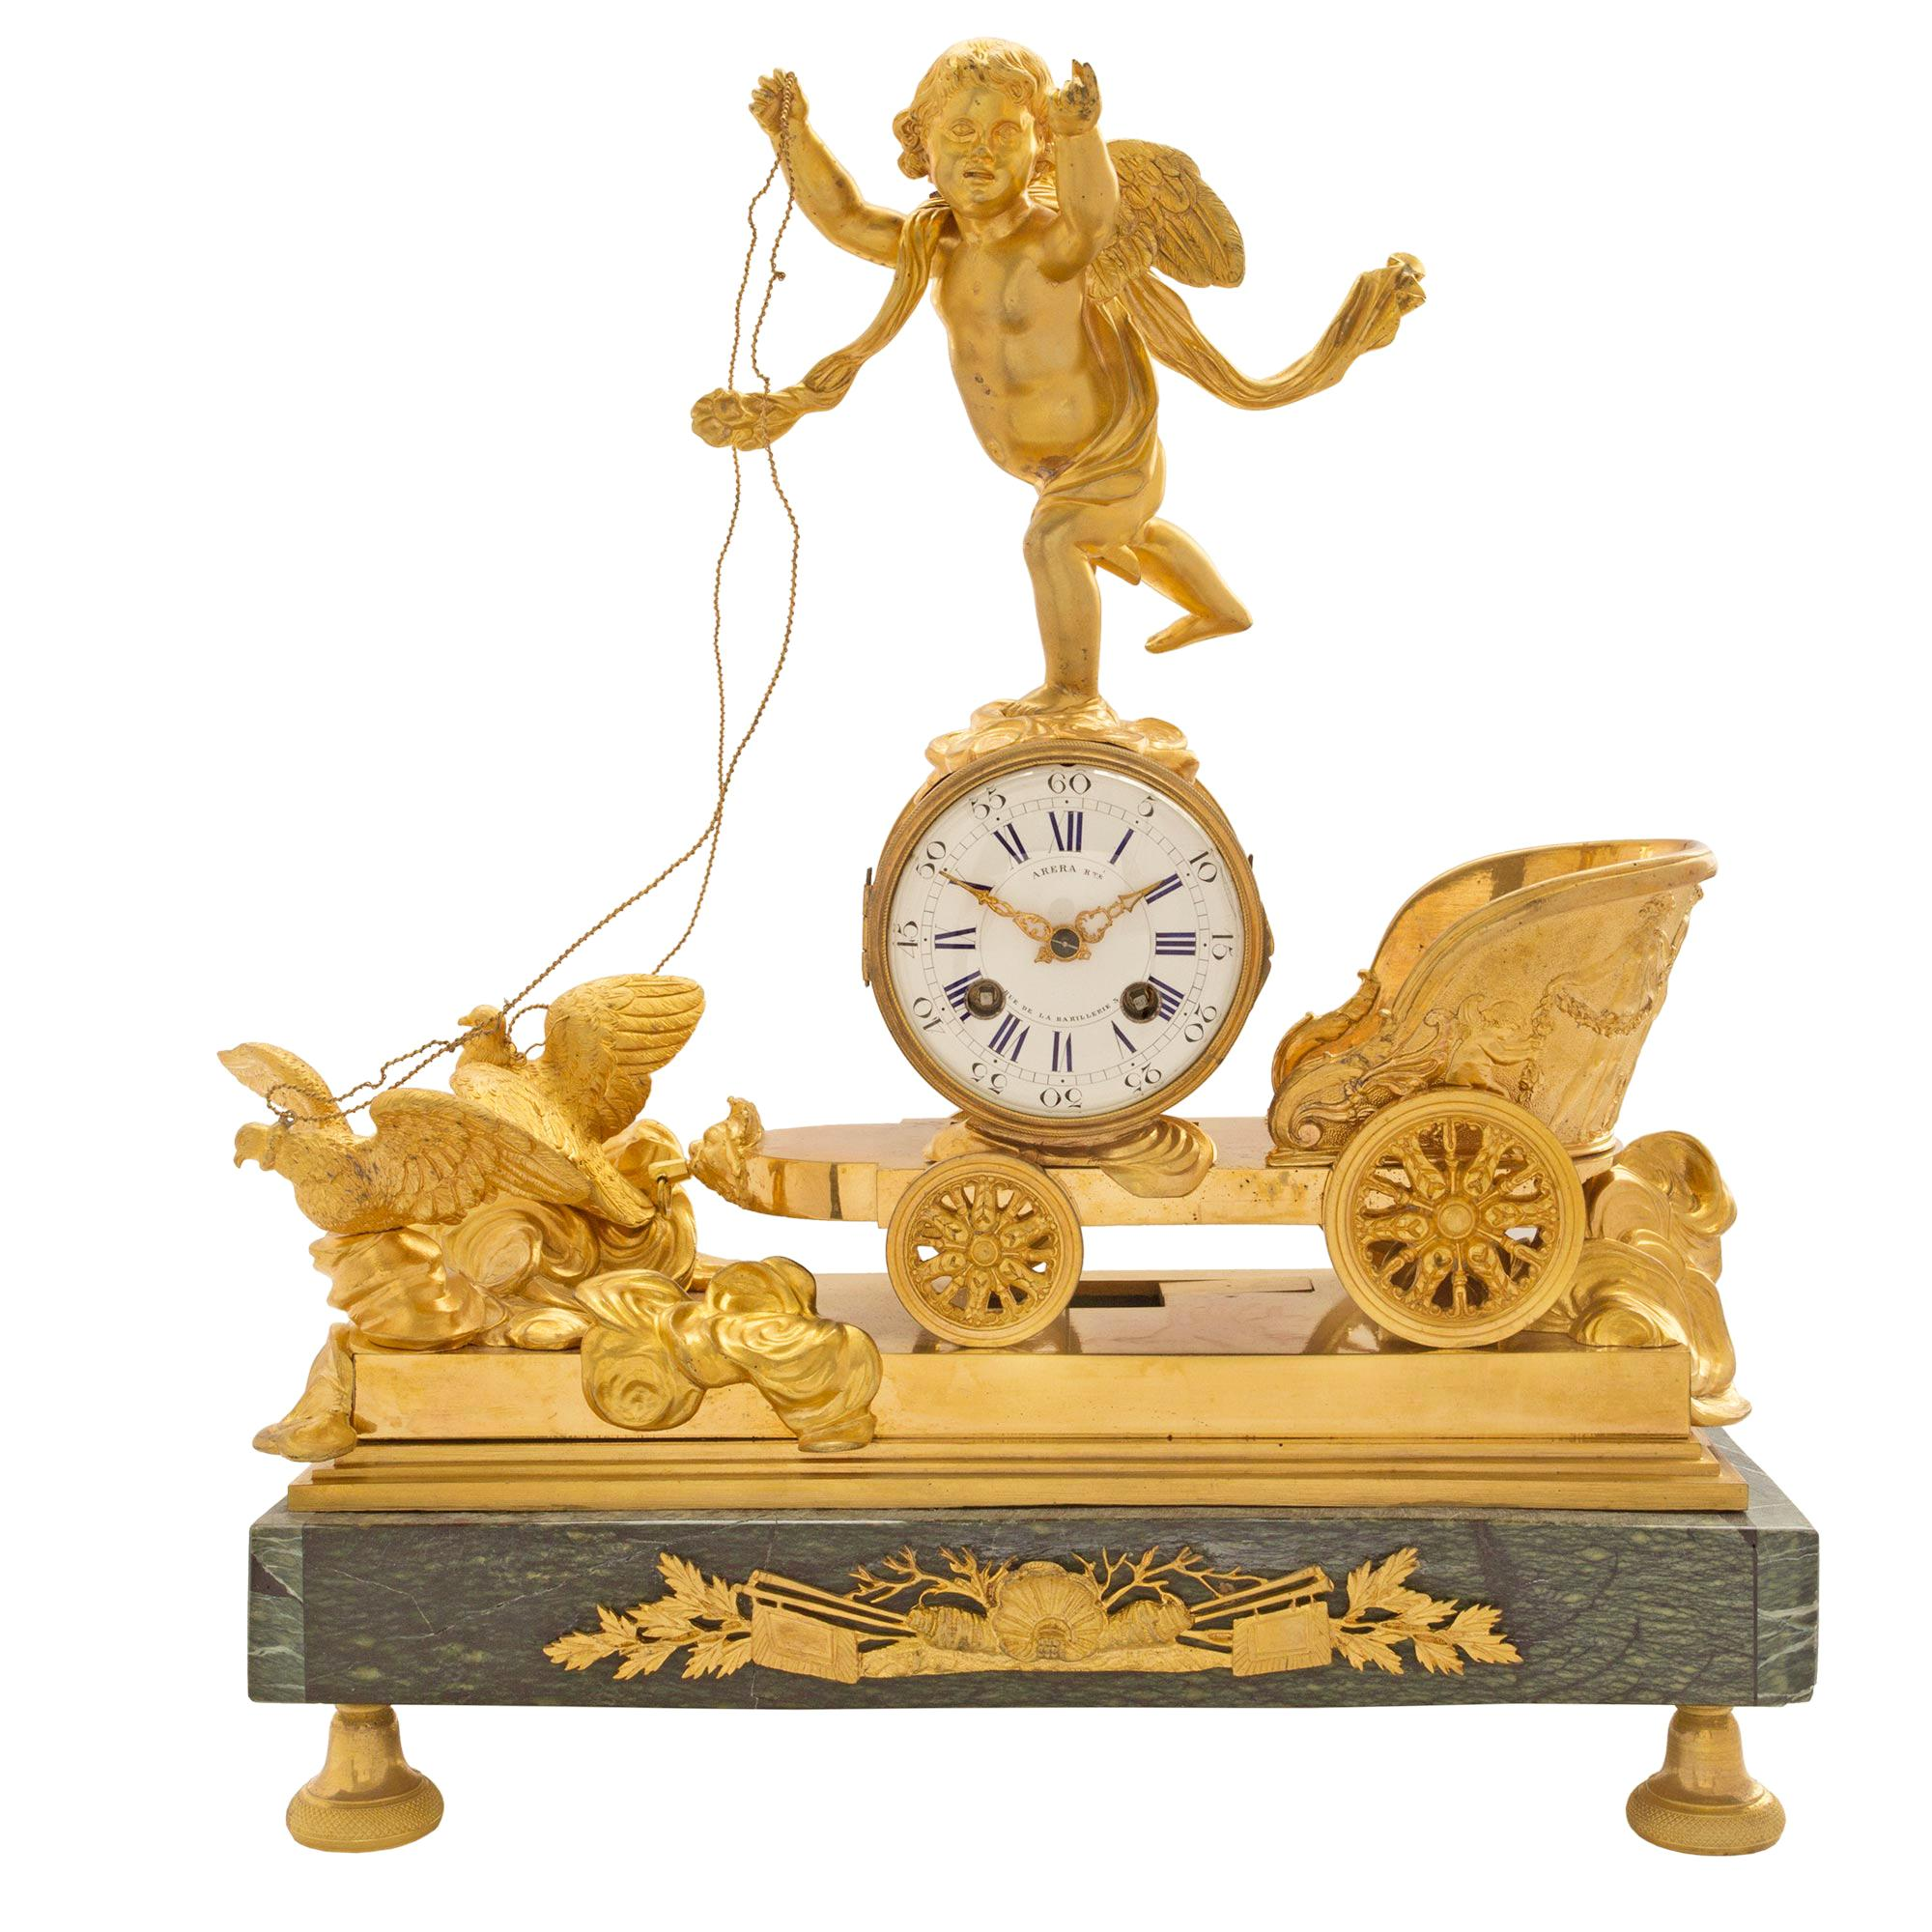 French 19th Century Neo-Classical Empire Style Ormolu and Marble Clock